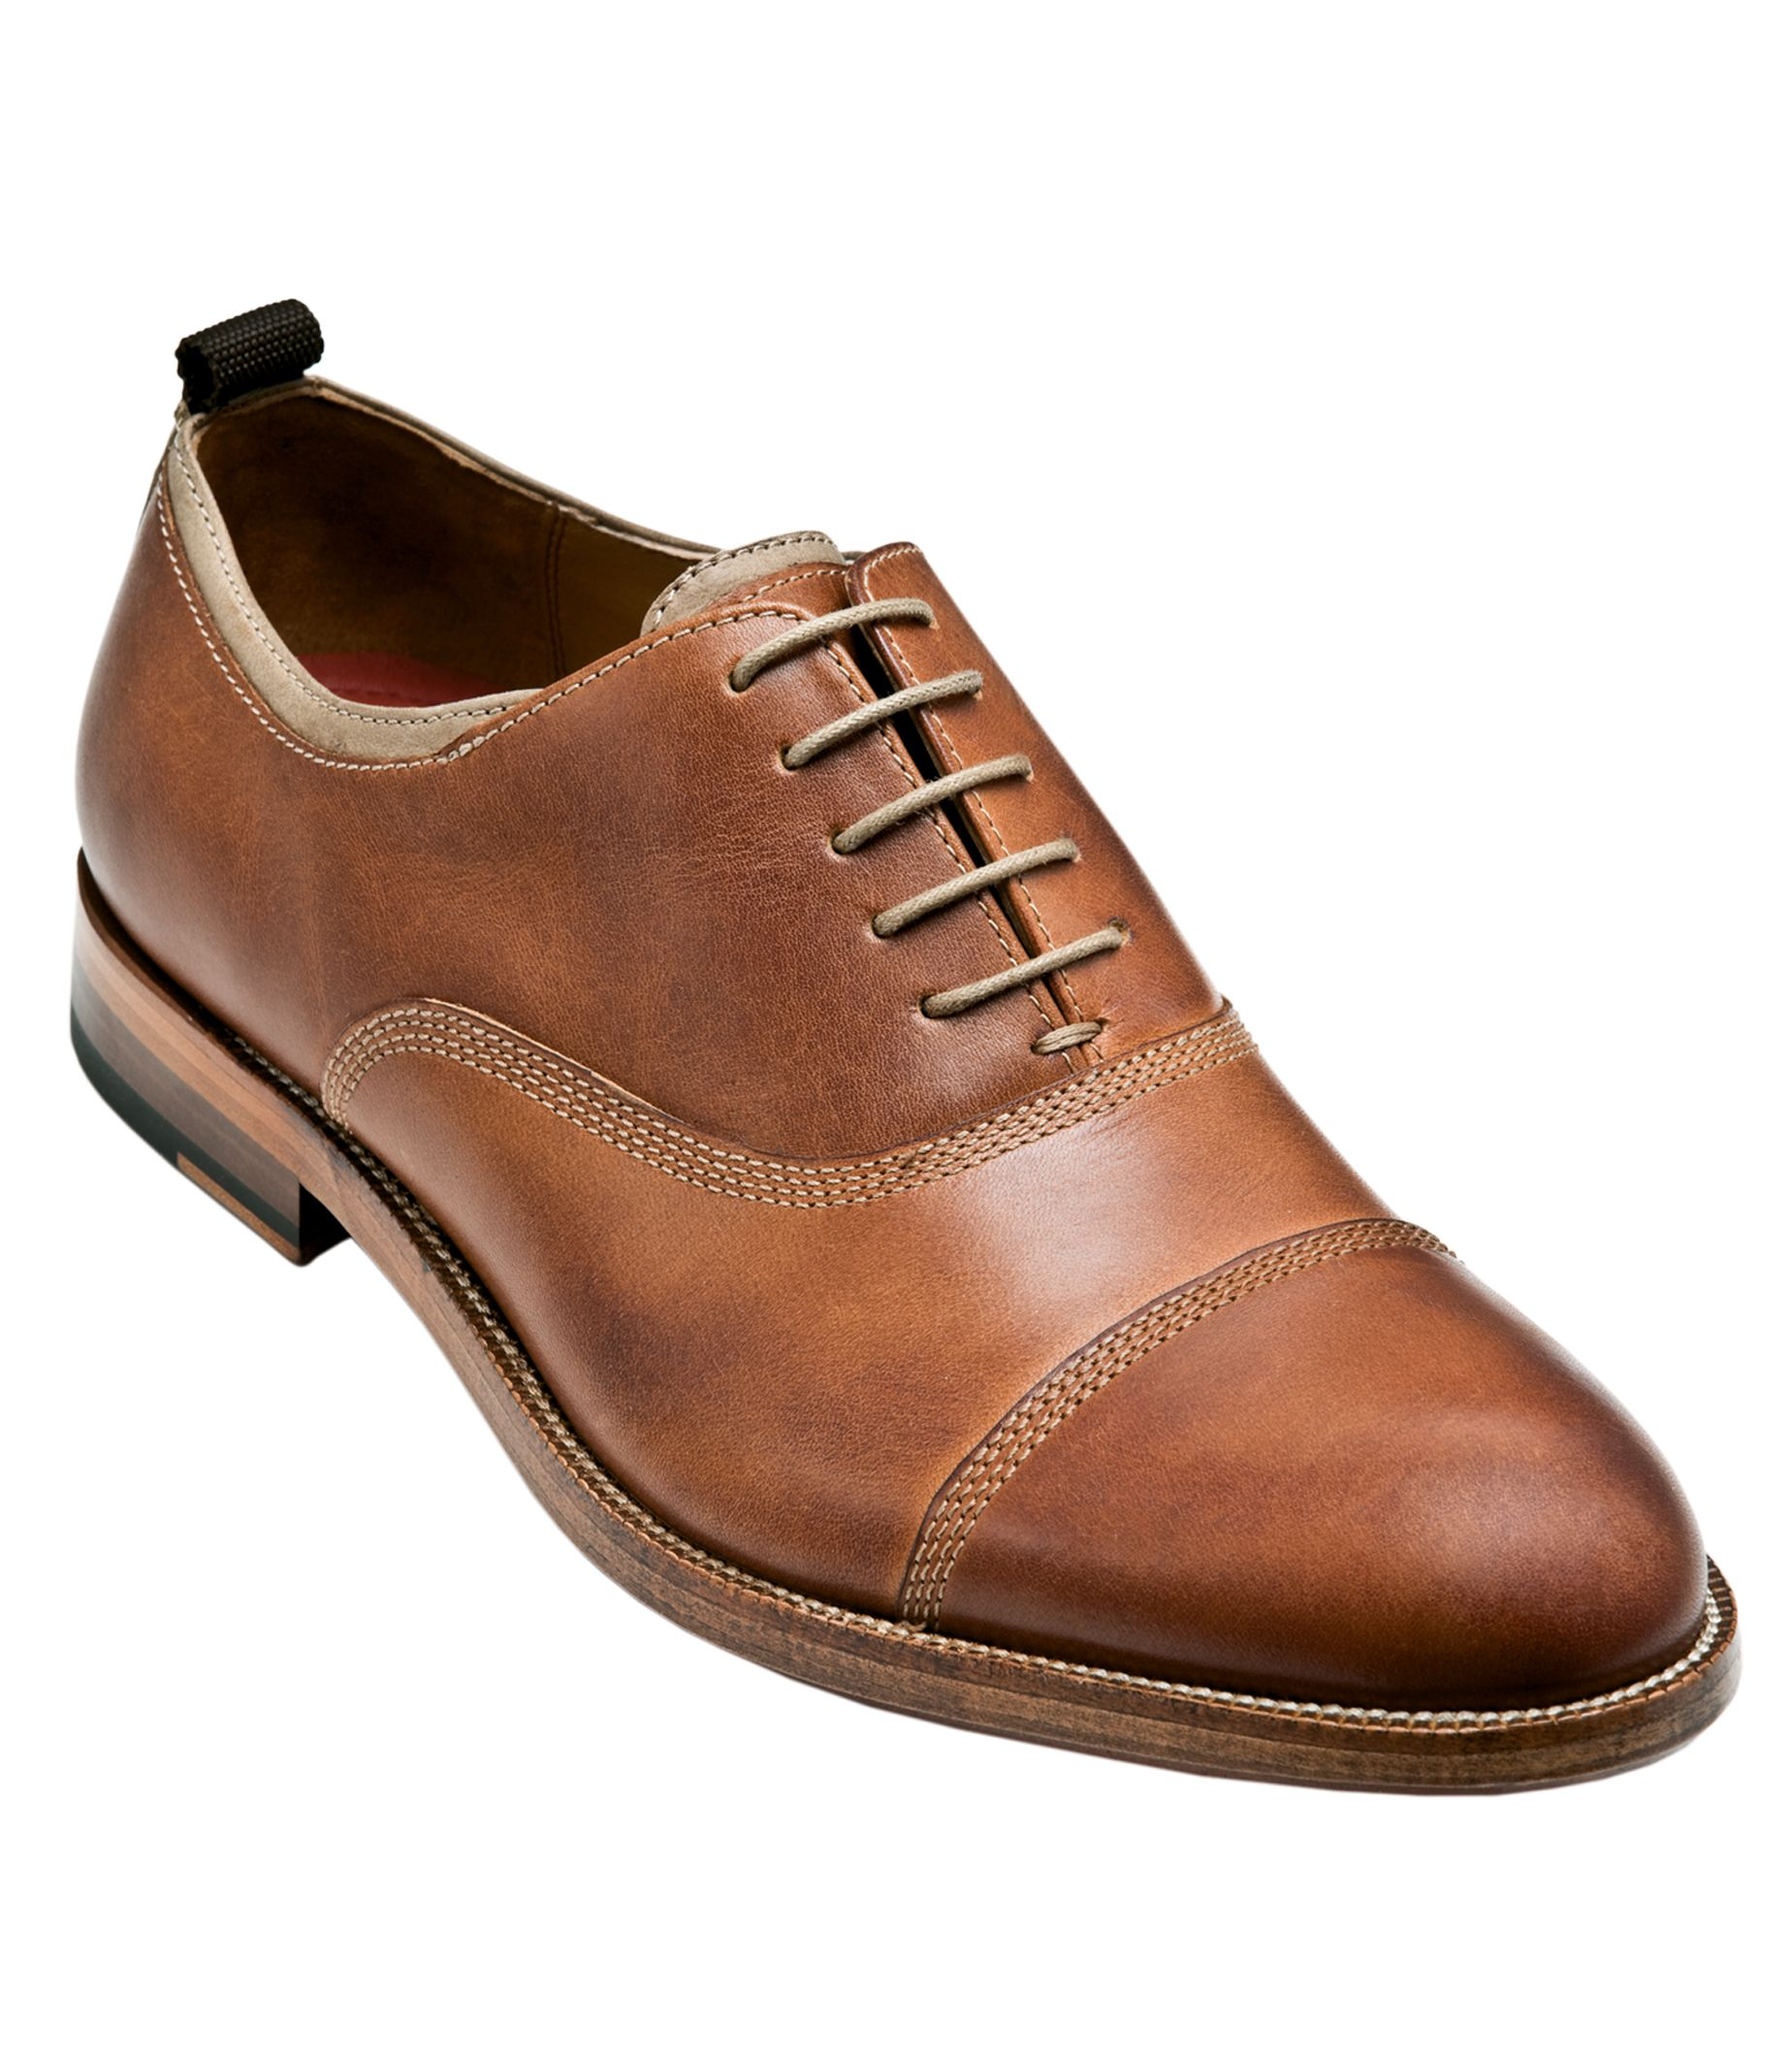 Mens Victorian Edwardian Shoes for Sale Online